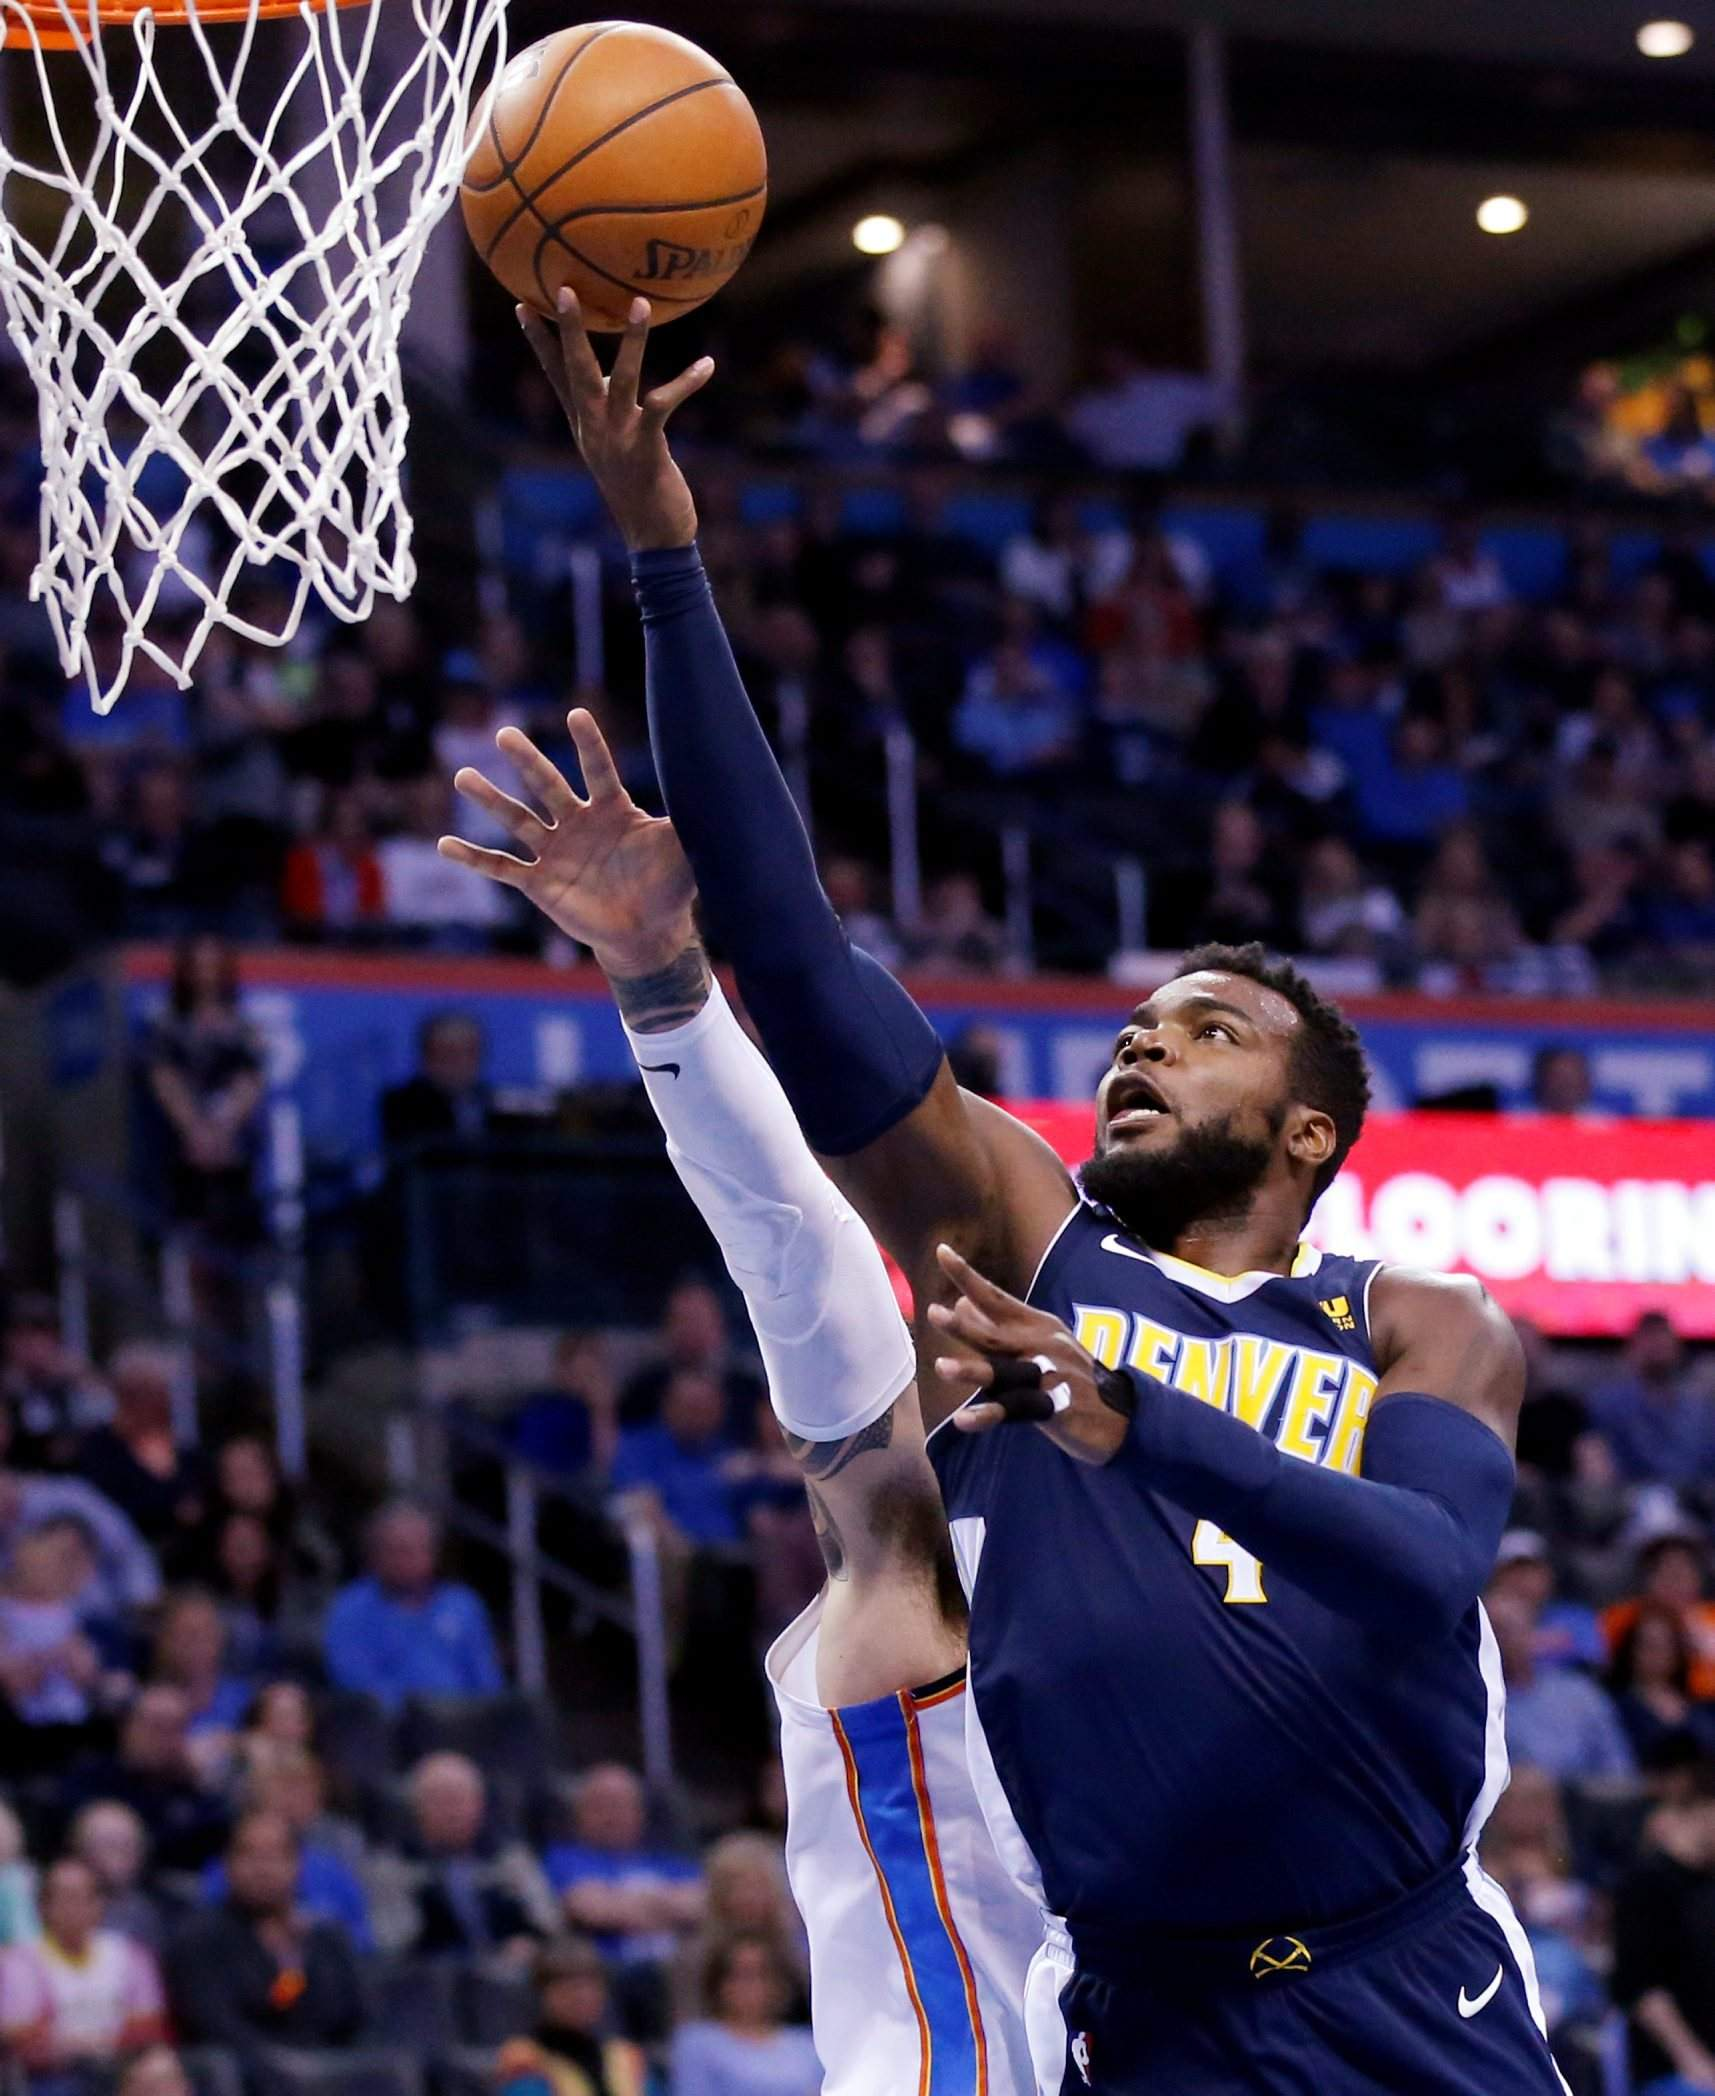 Millsap Scores 36 As Nuggets Top Thunder In OT